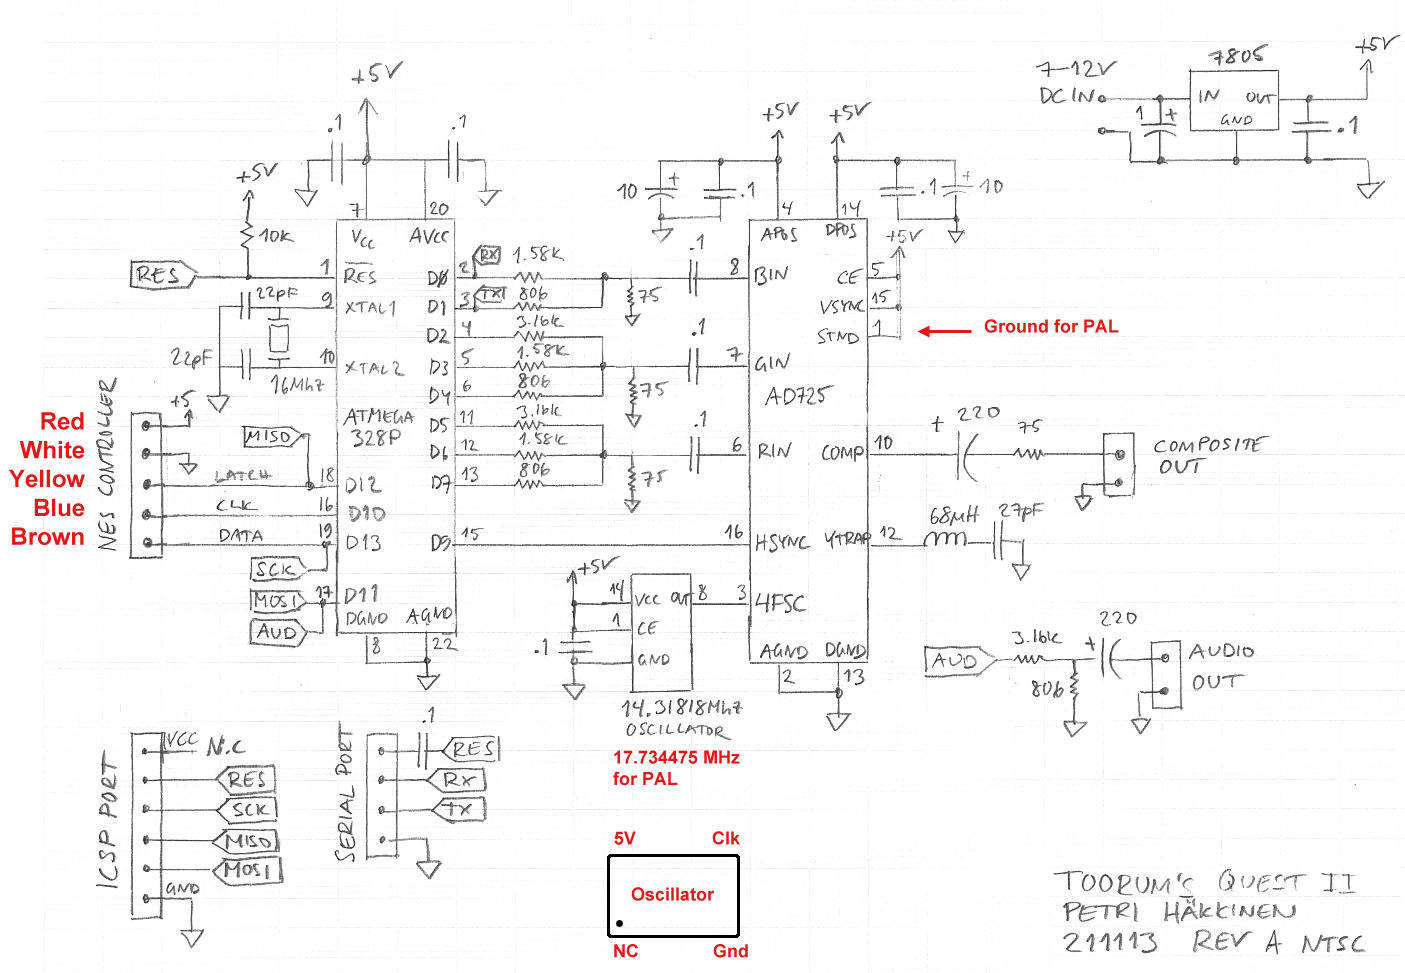 Gammon Forum Electronics Microprocessors Toorums Quest Ii Nes Wiring Diagram For Pal Tv Standard You Ground Pin 1 Of The Ad725 Chip And Use A Different Frequency Oscillator I Have Noted Wire Colours Controller Used